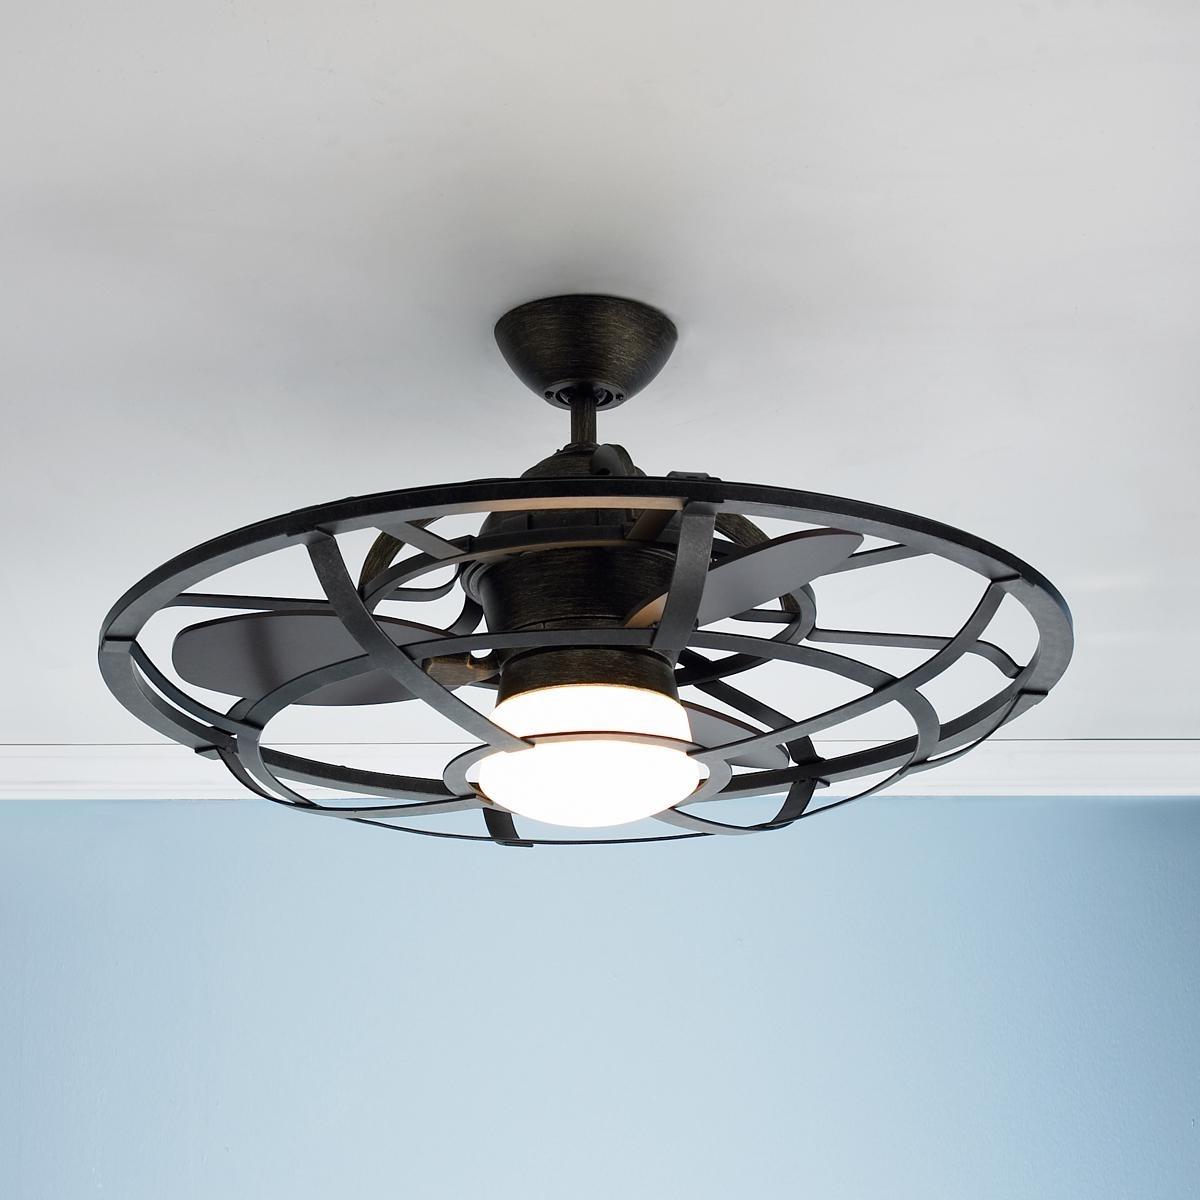 Newest Stylish Ceiling Fan For Garage With Lights — Ganncellars Regarding Outdoor Ceiling Fans For Canopy (View 8 of 20)